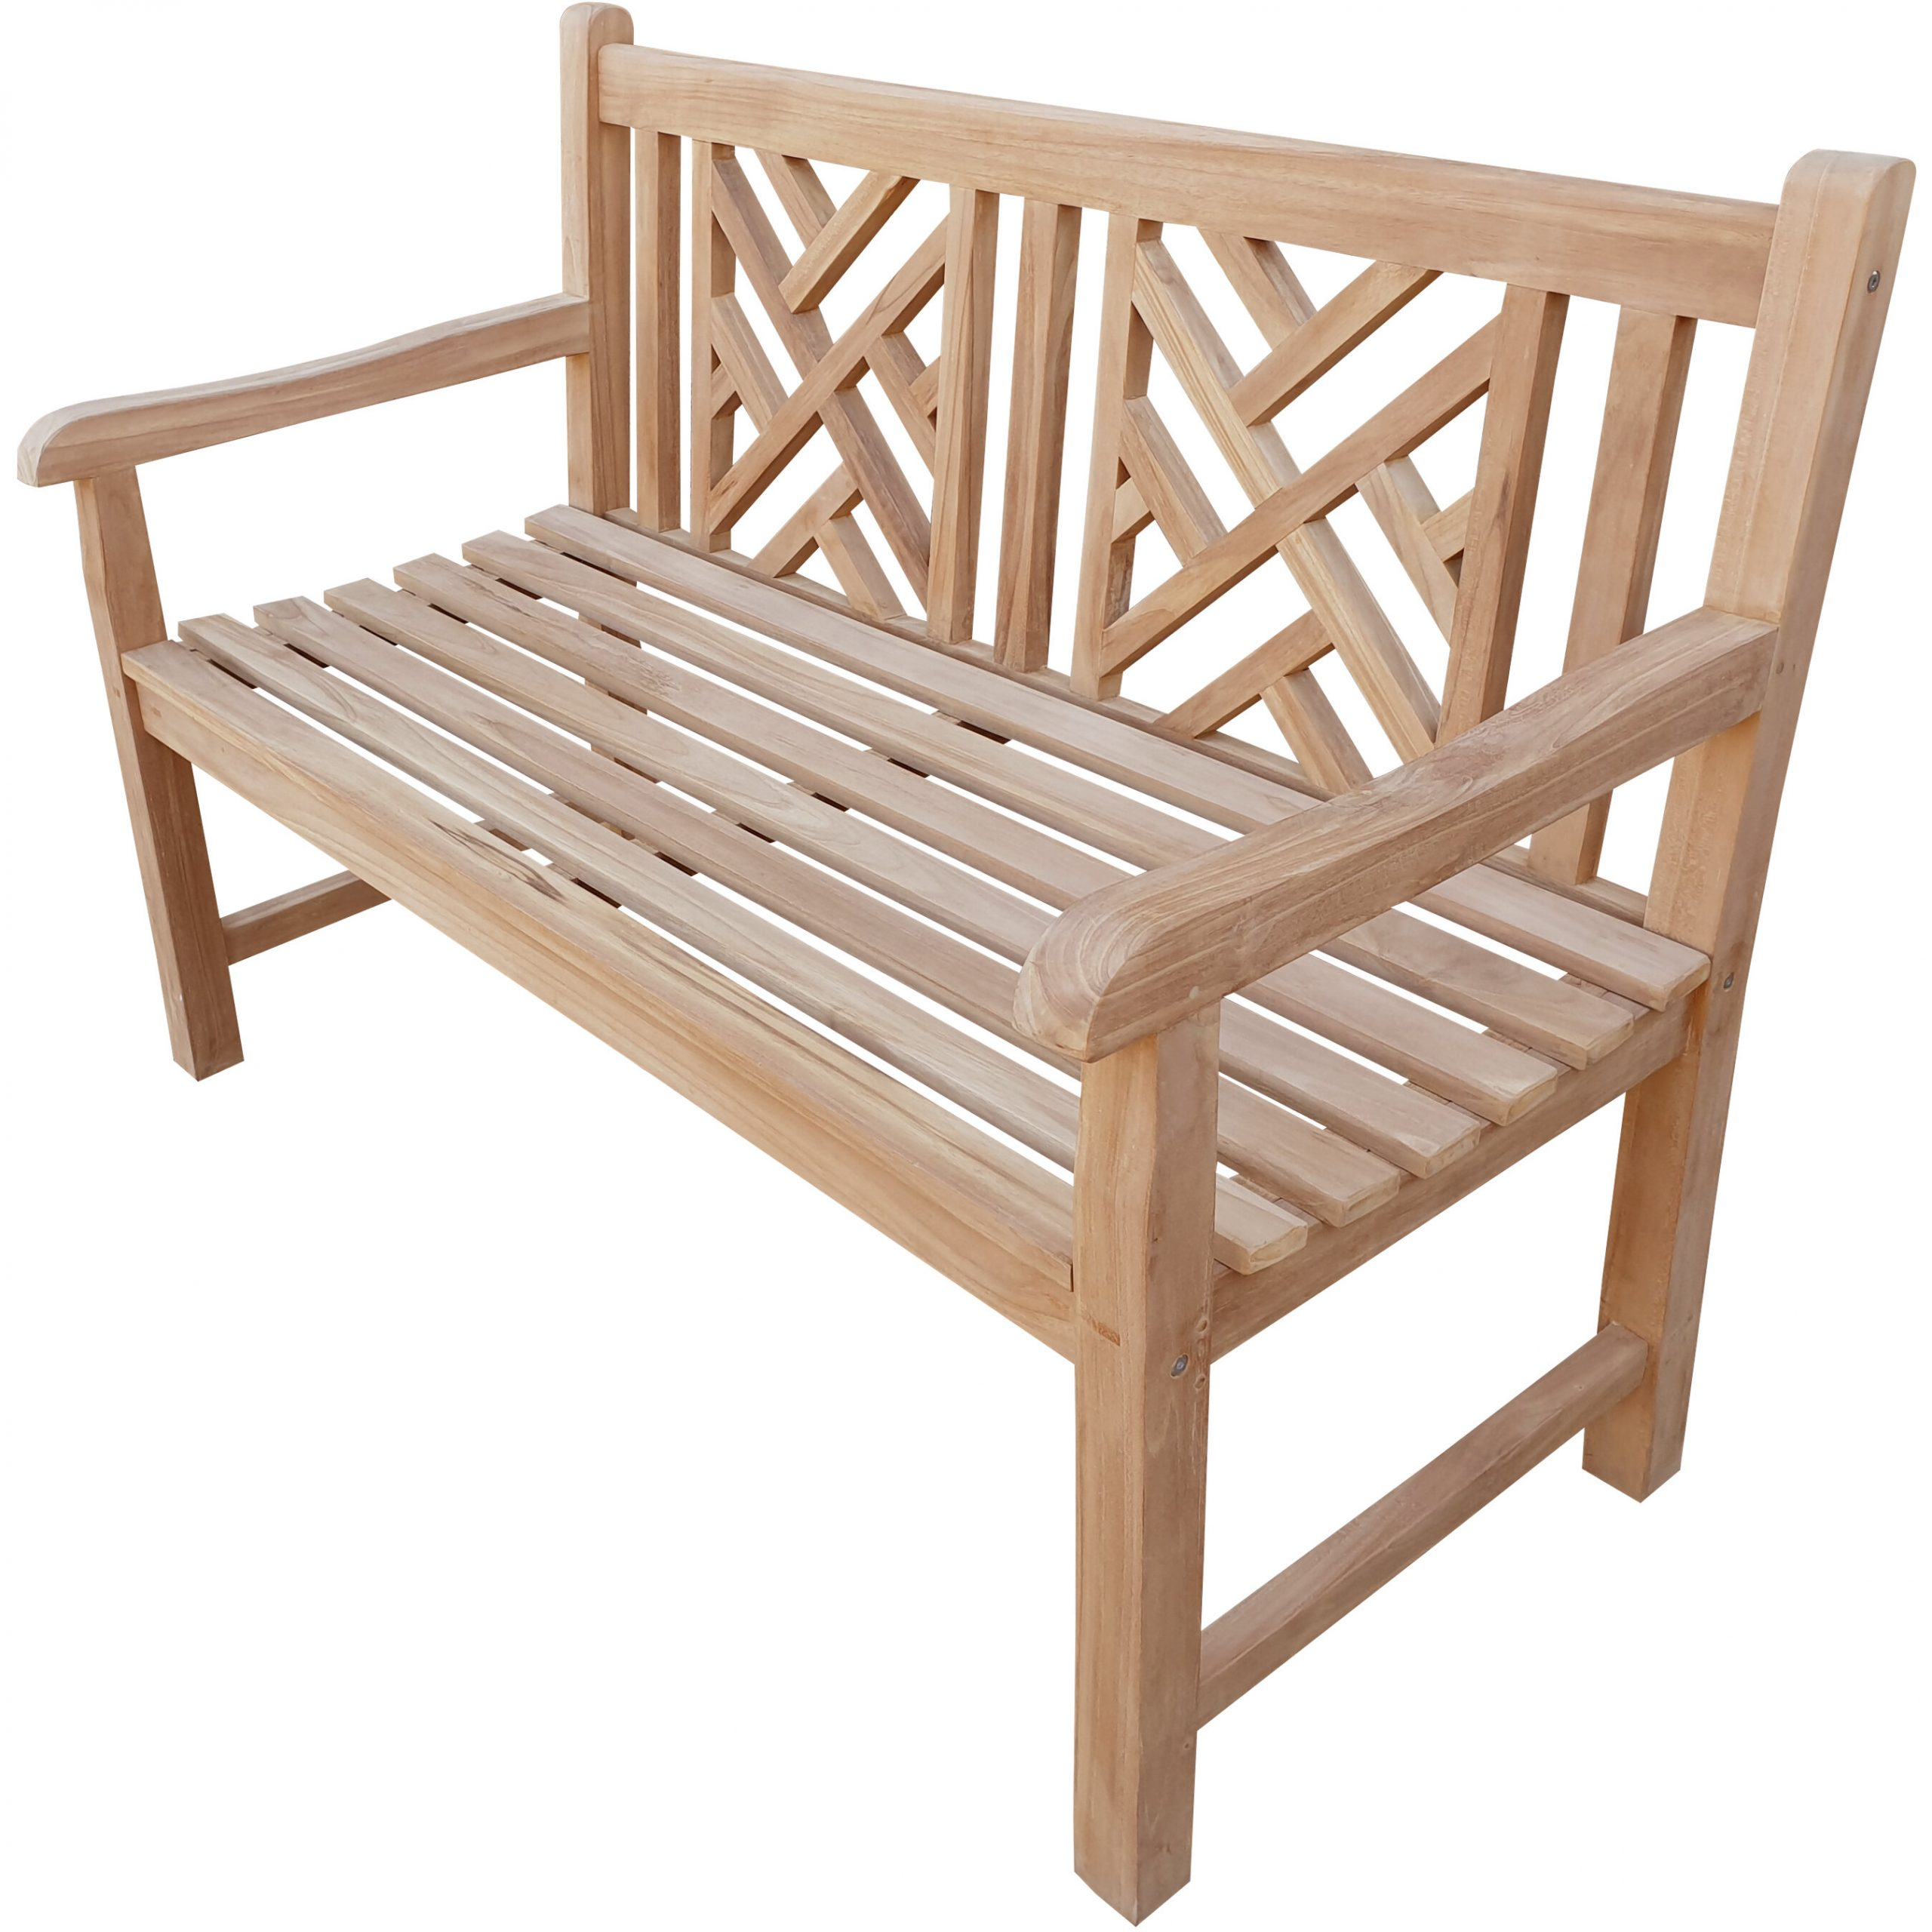 Freya Teak Garden Bench Regarding Hampstead Teak Garden Benches (View 14 of 25)